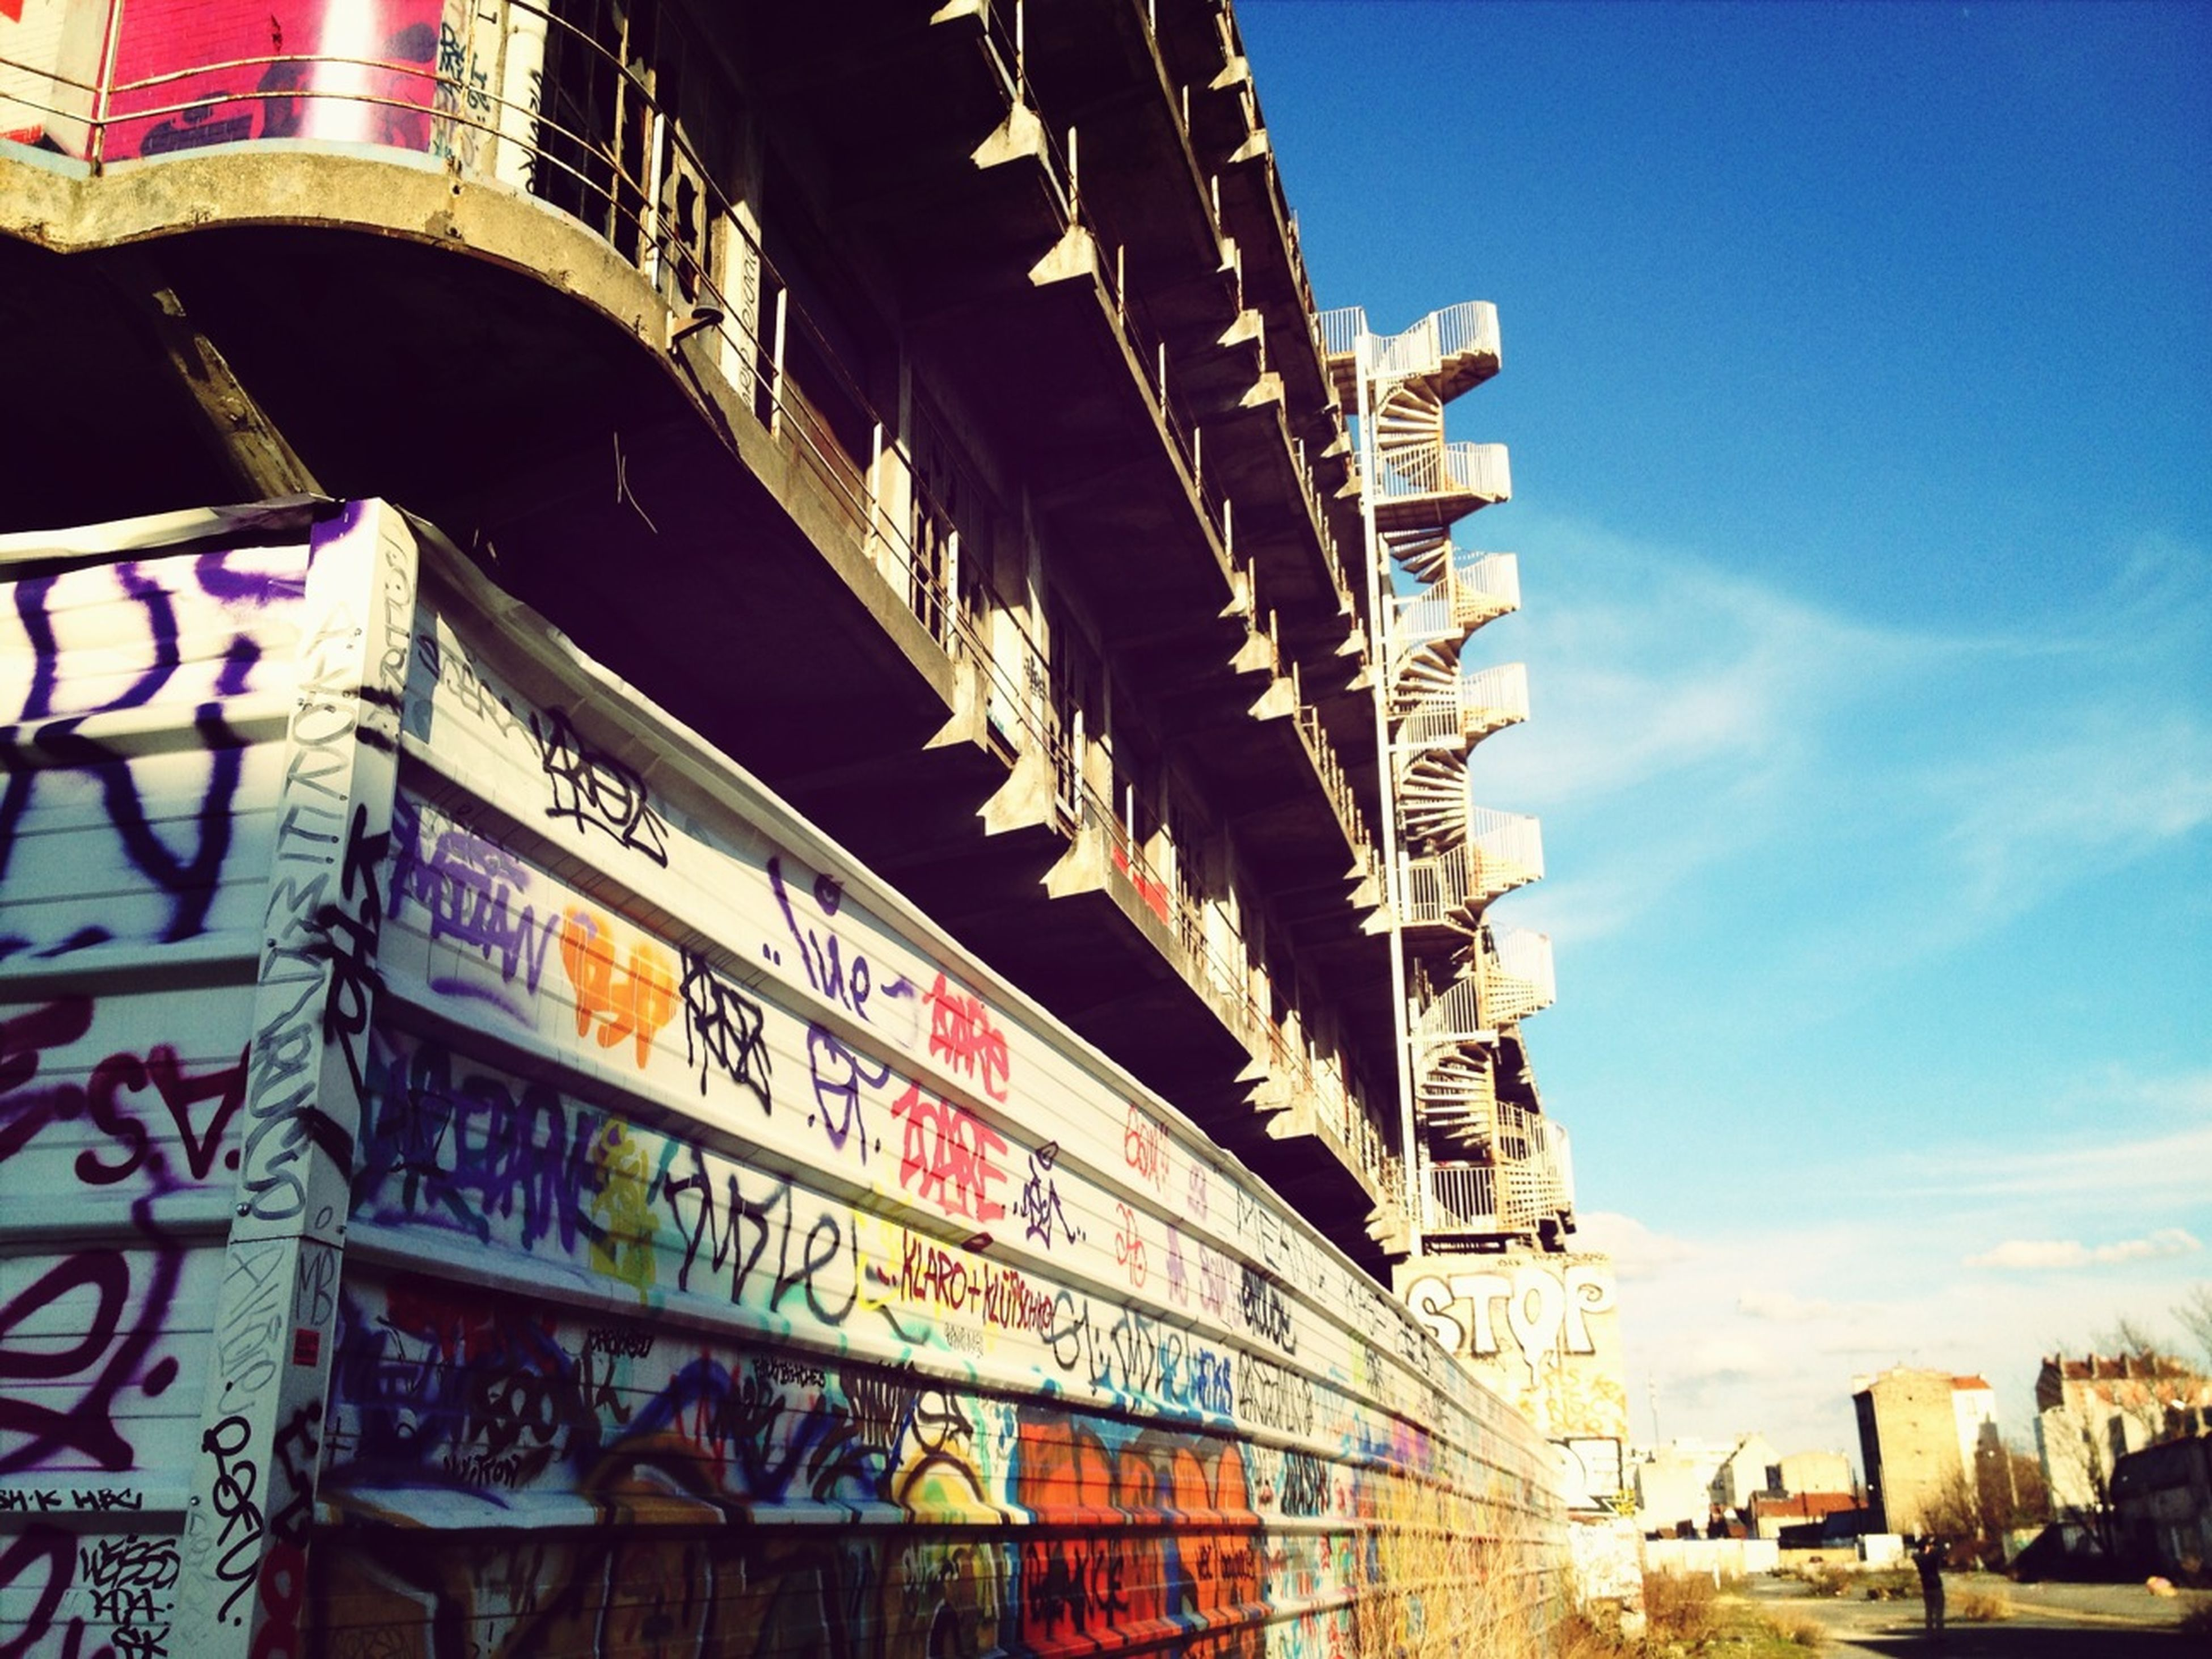 architecture, built structure, building exterior, low angle view, transportation, text, city, sky, western script, graffiti, day, building, outdoors, incidental people, clear sky, blue, no people, street, city life, non-western script